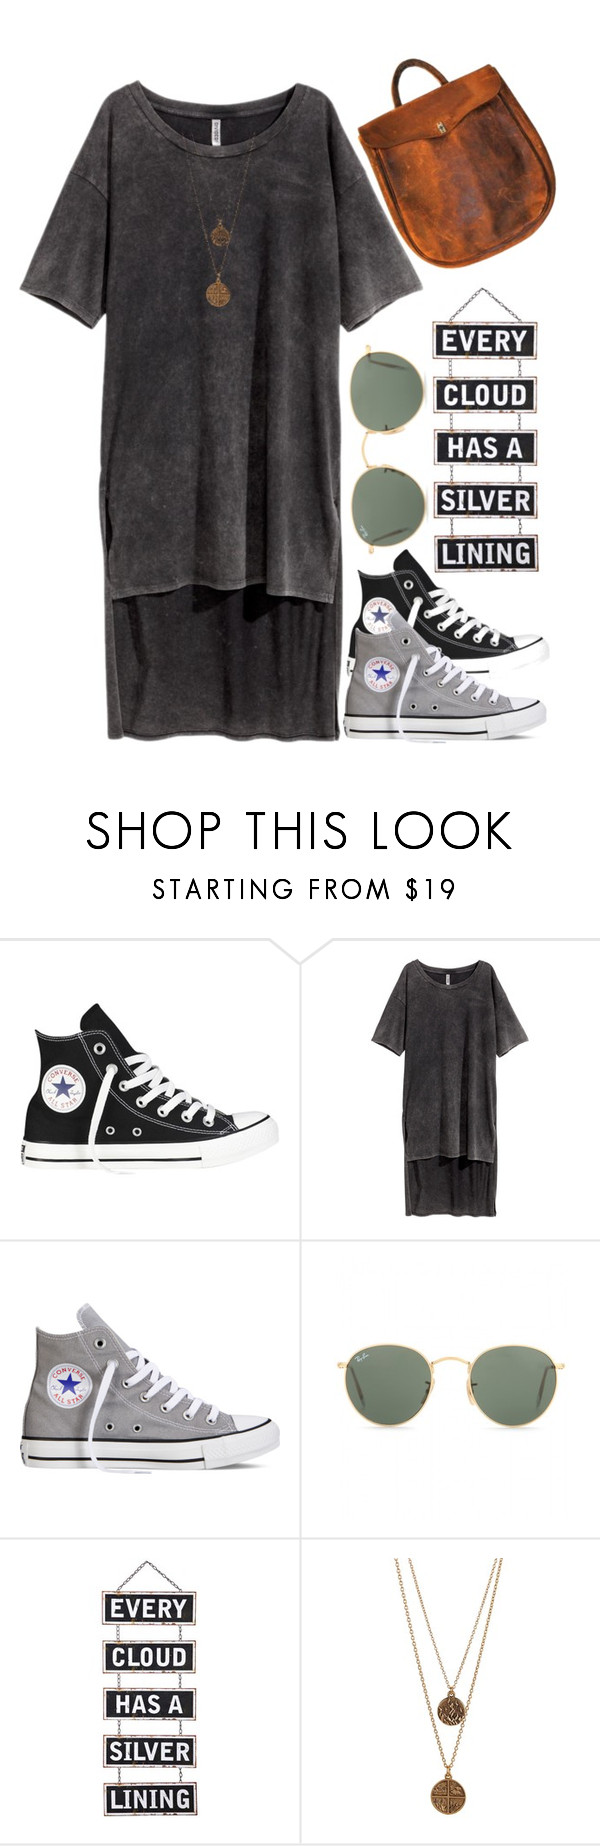 """""""BOHO ISSUES-CLASSIC !"""" by rebeler ❤ liked on Polyvore featuring Converse, H&M, Ray-Ban, Silver Lining, Bee Charming, vintage, converse, rayban, LeatherBag and casualdress"""